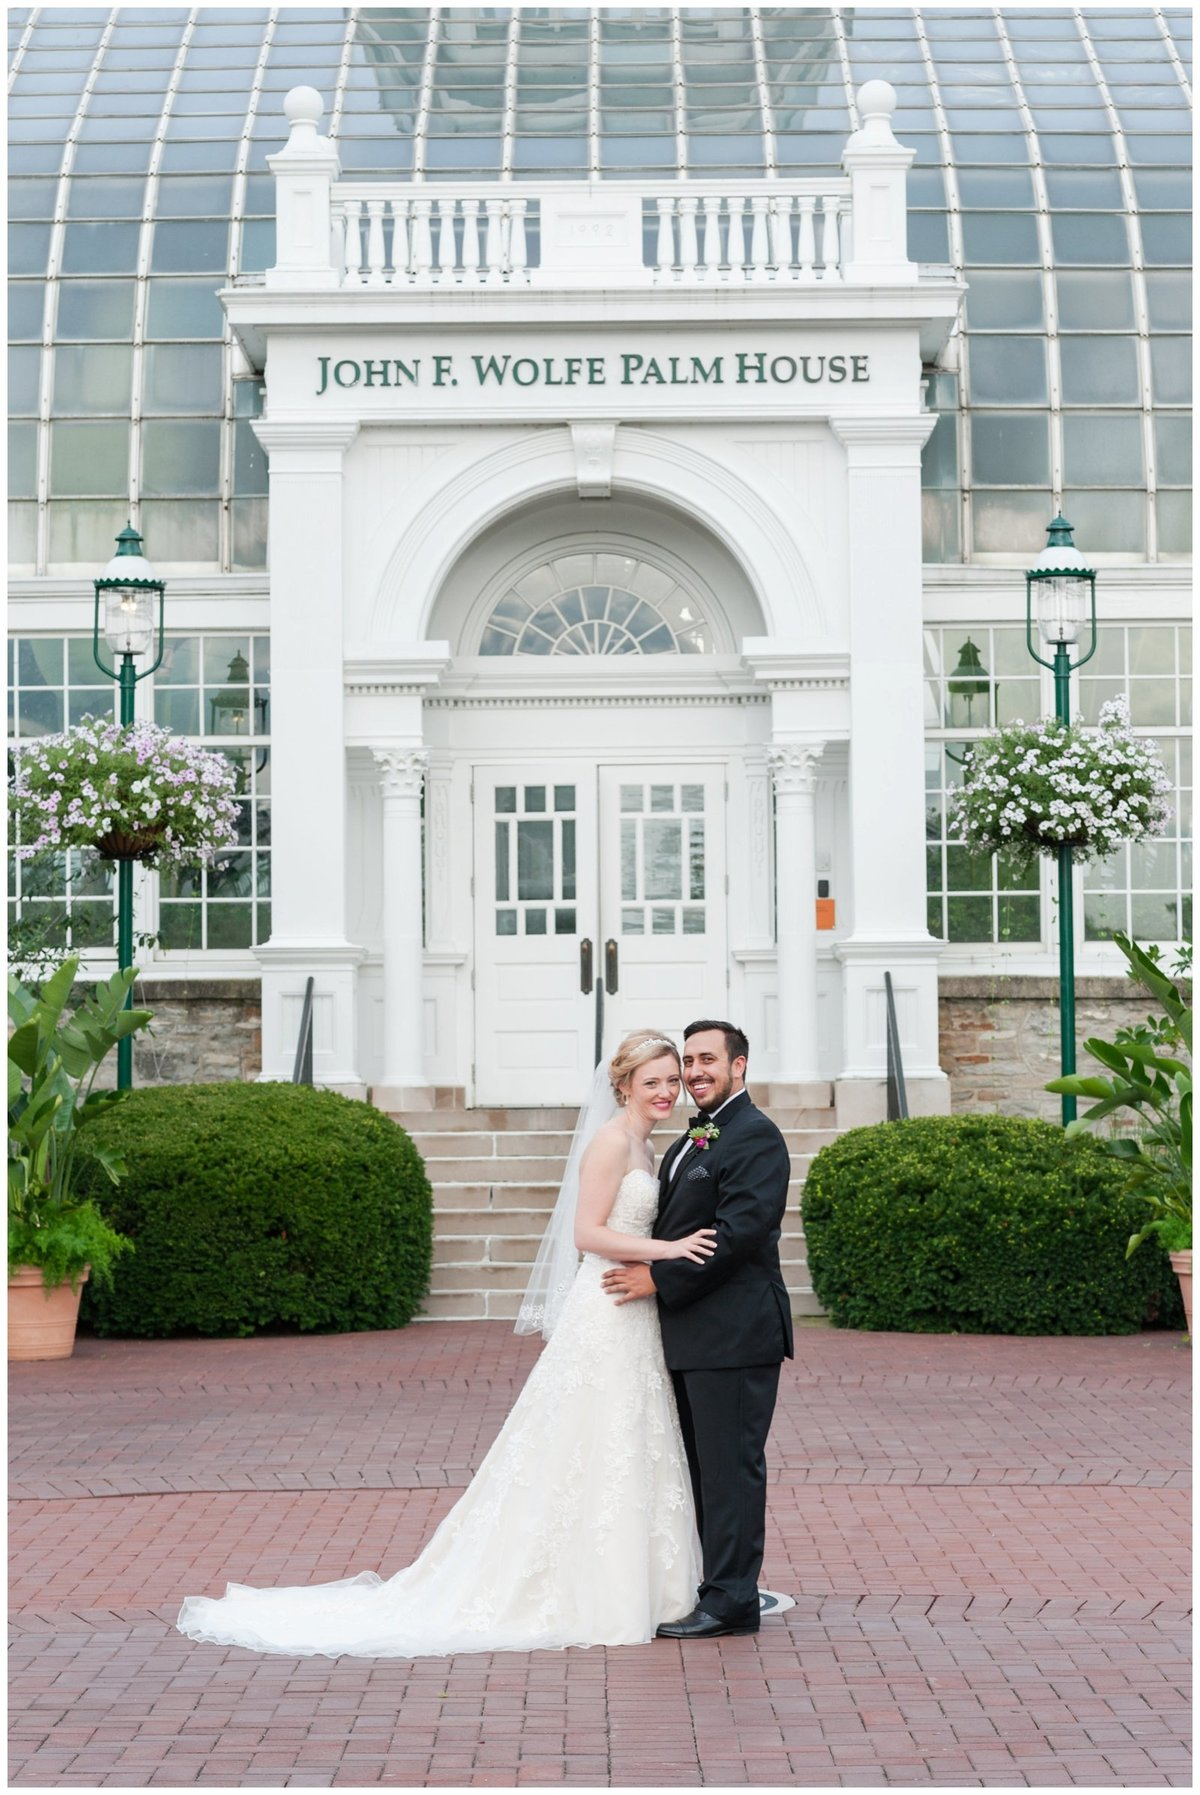 Franklin Park Conservatory Wedding The Palm House Bridal Garden Grove_0151